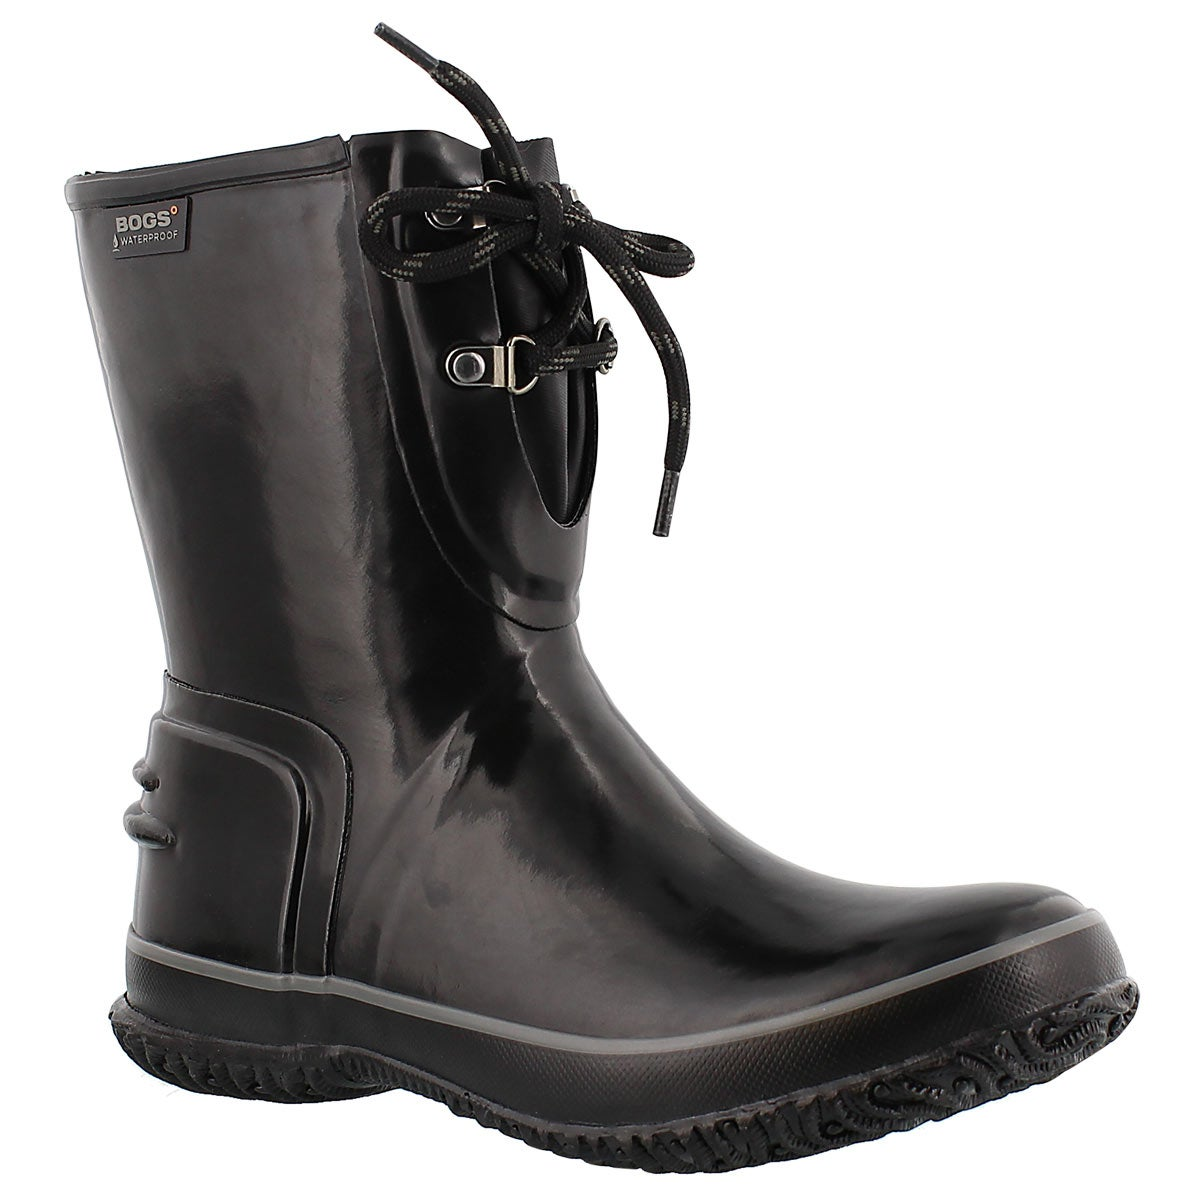 Lds UrbanFarmer 2Eye blk low rain boot